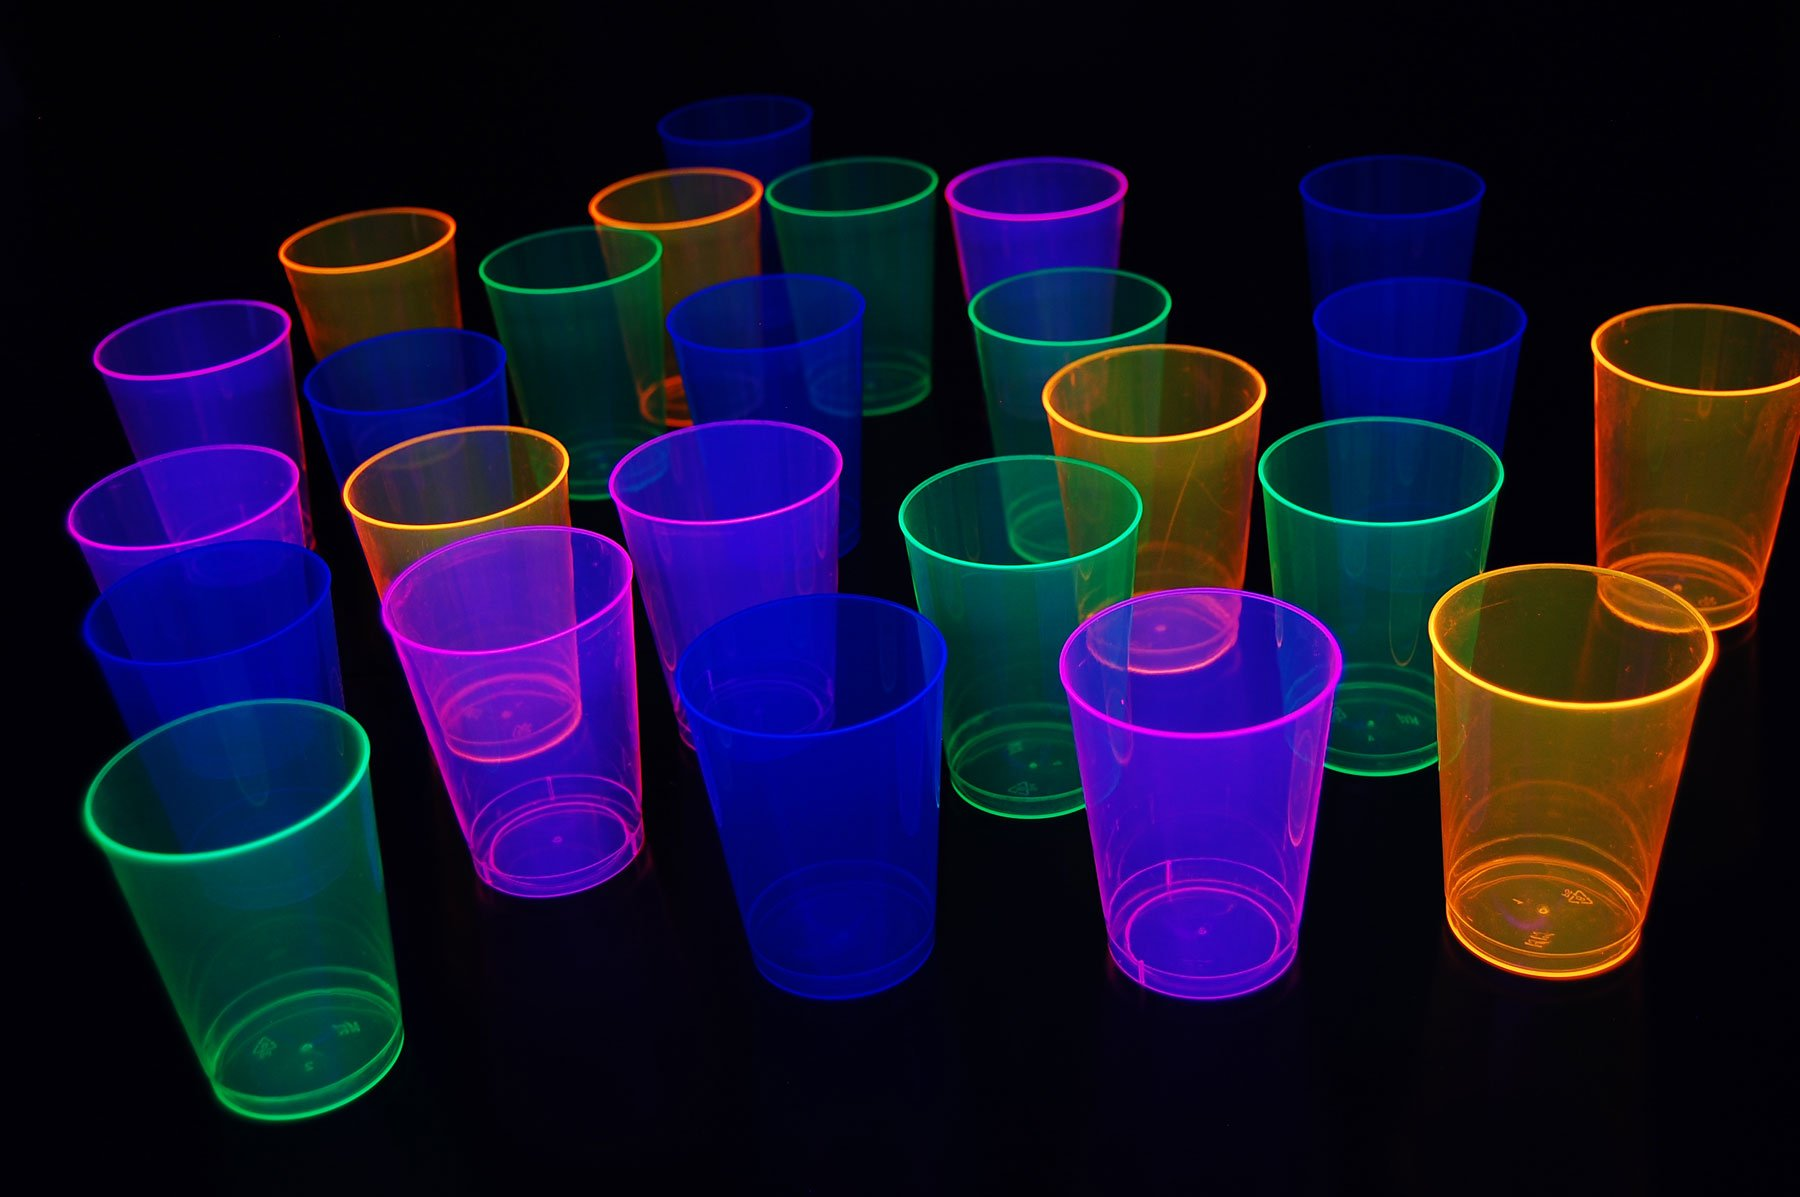 100ct Blacklight Reactive 10oz Party Cups + 5 Blacklight Balloons (Neon Assorted) by DirectGlow LLC